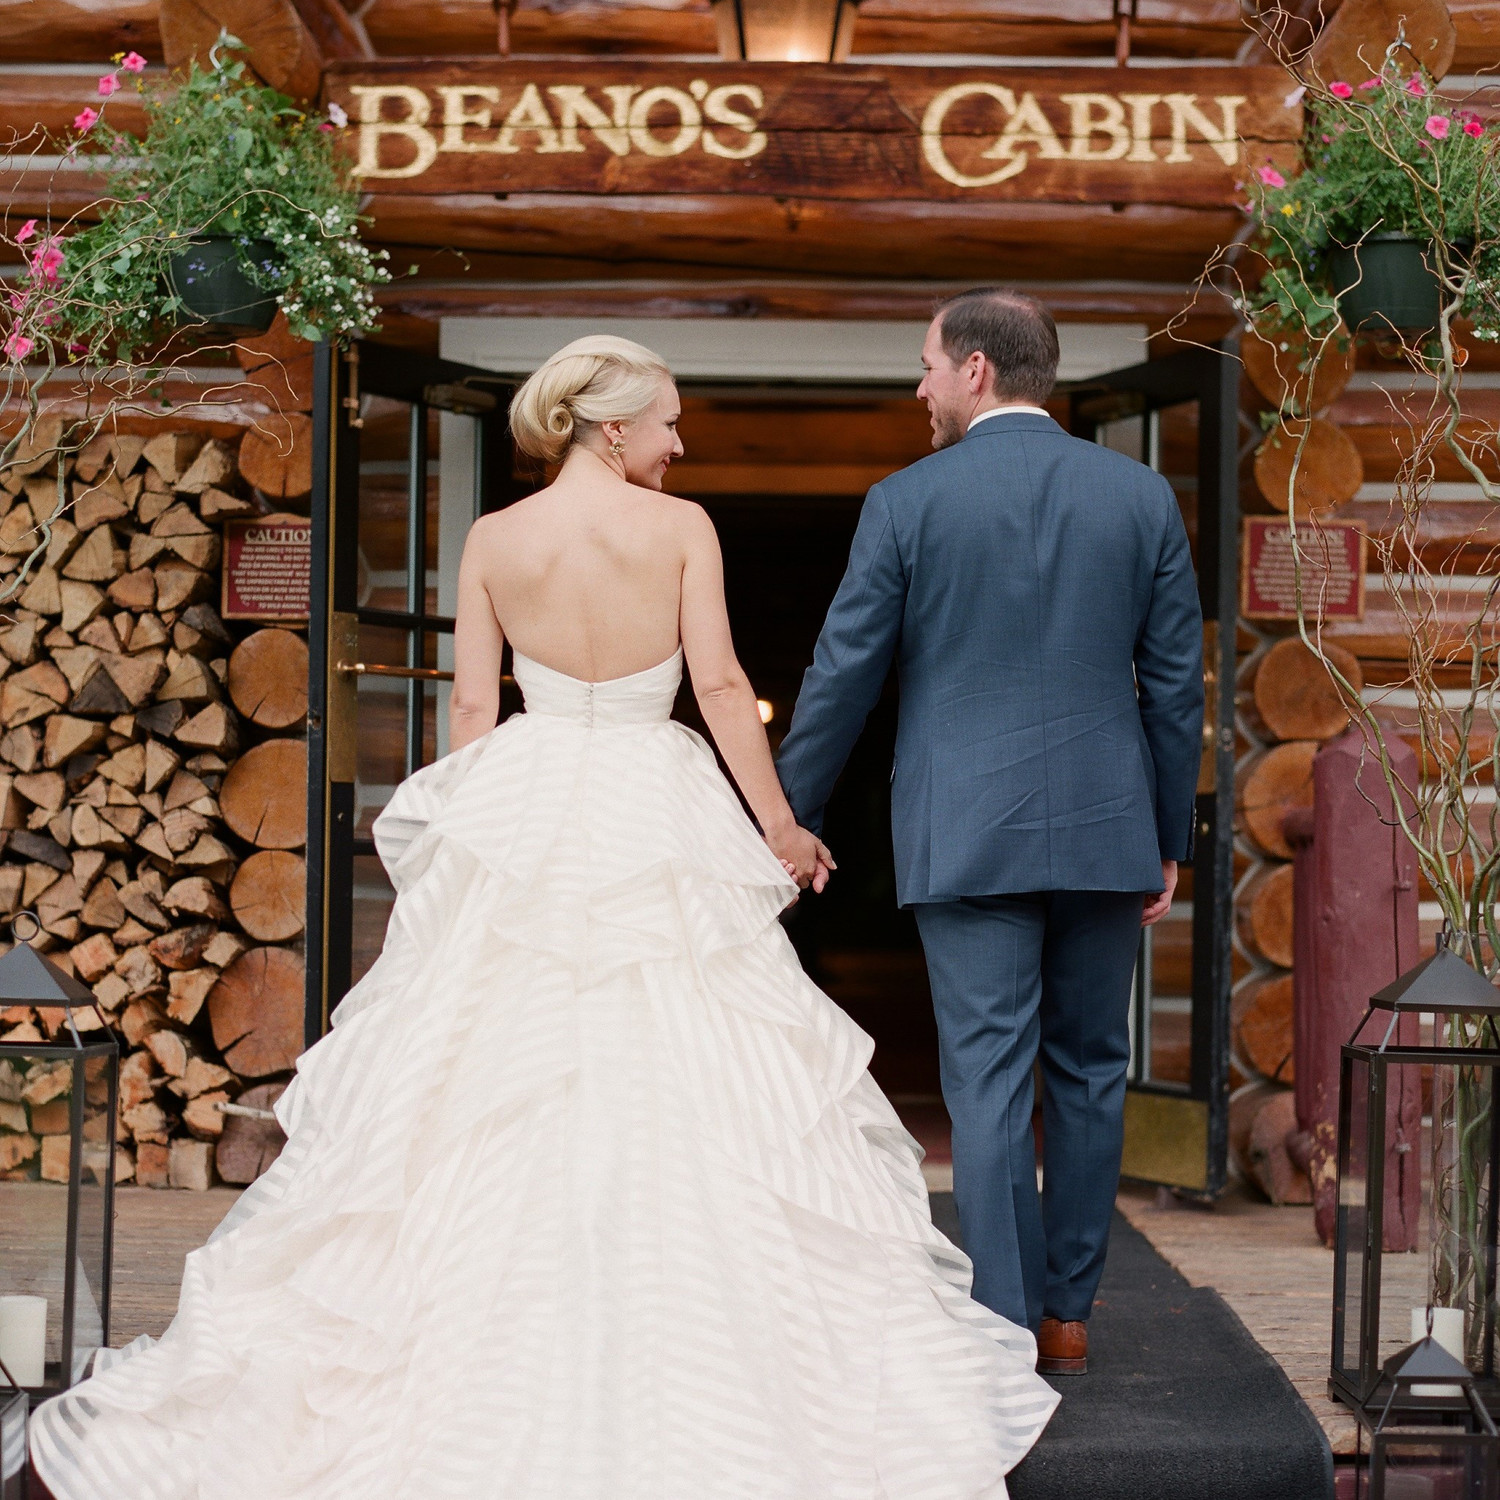 Vintage Wedding Dresses Utah: Stacey And Eric's Beaver Creek Mountain Wedding